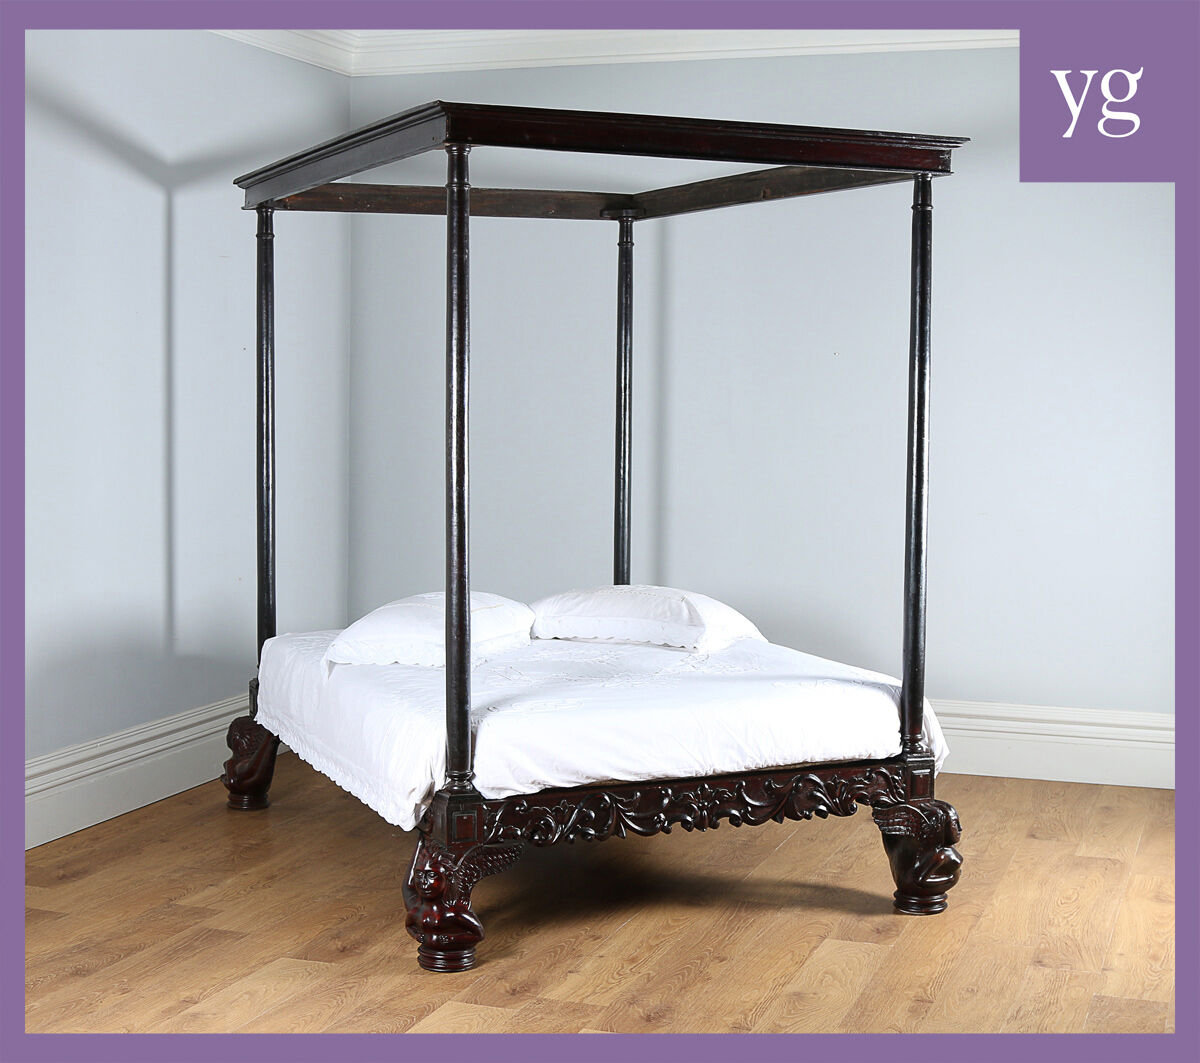 Antique Colonial Raj Four Poster Post Double Queen Super King Size Day Bed c1800